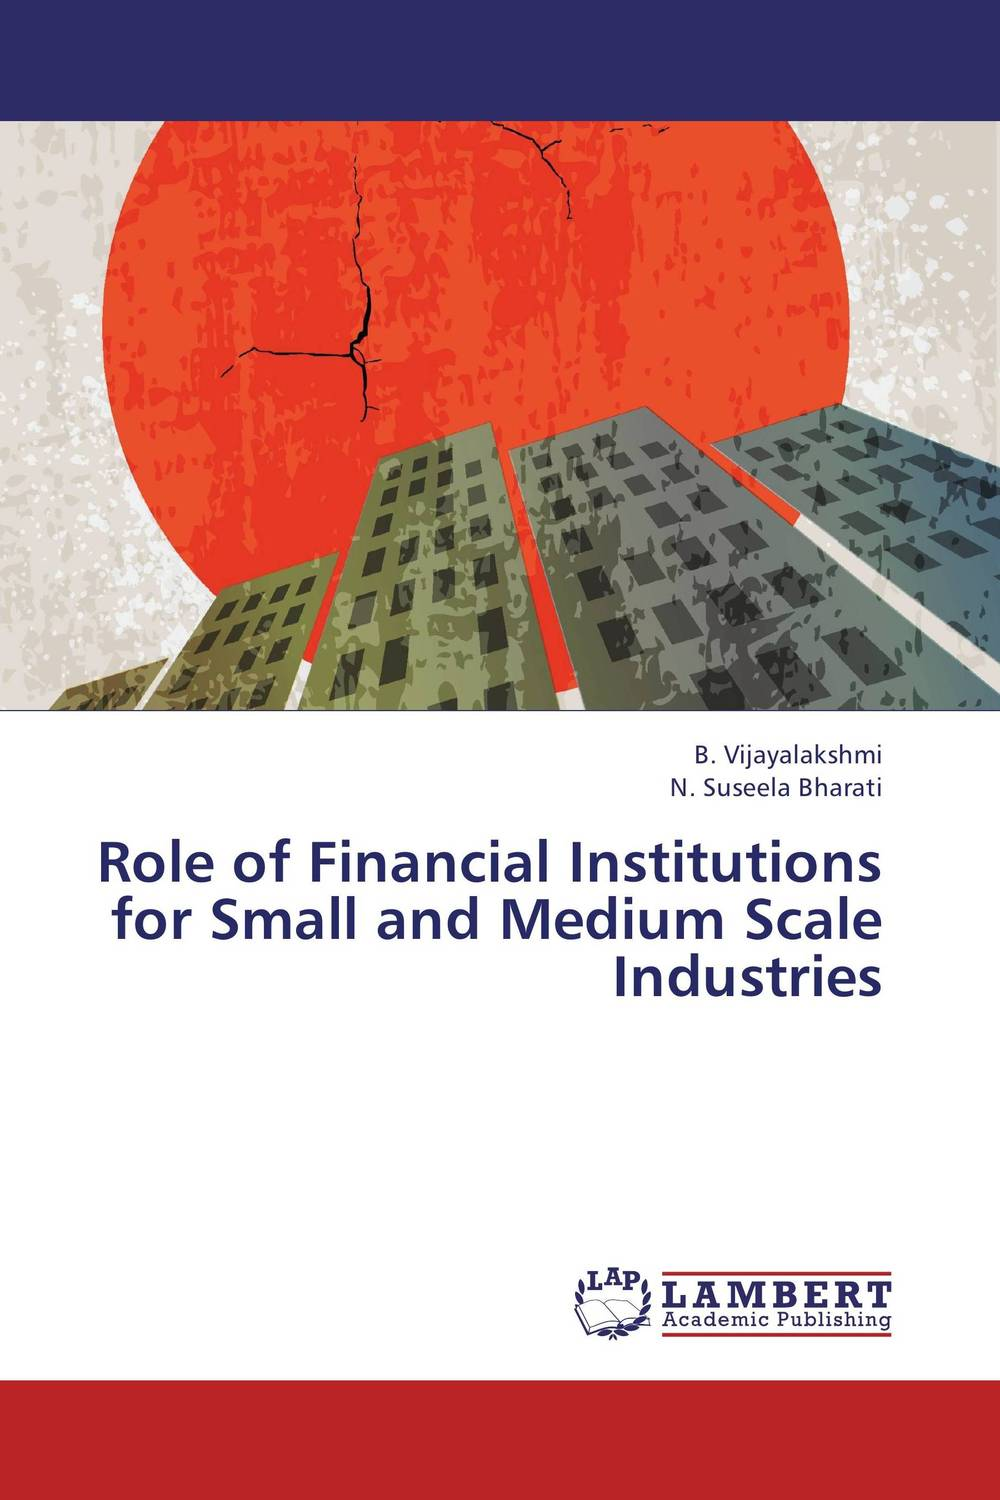 Role of Financial Institutions for Small and Medium Scale Industries financial performance of lanco industries limited in chittoor district